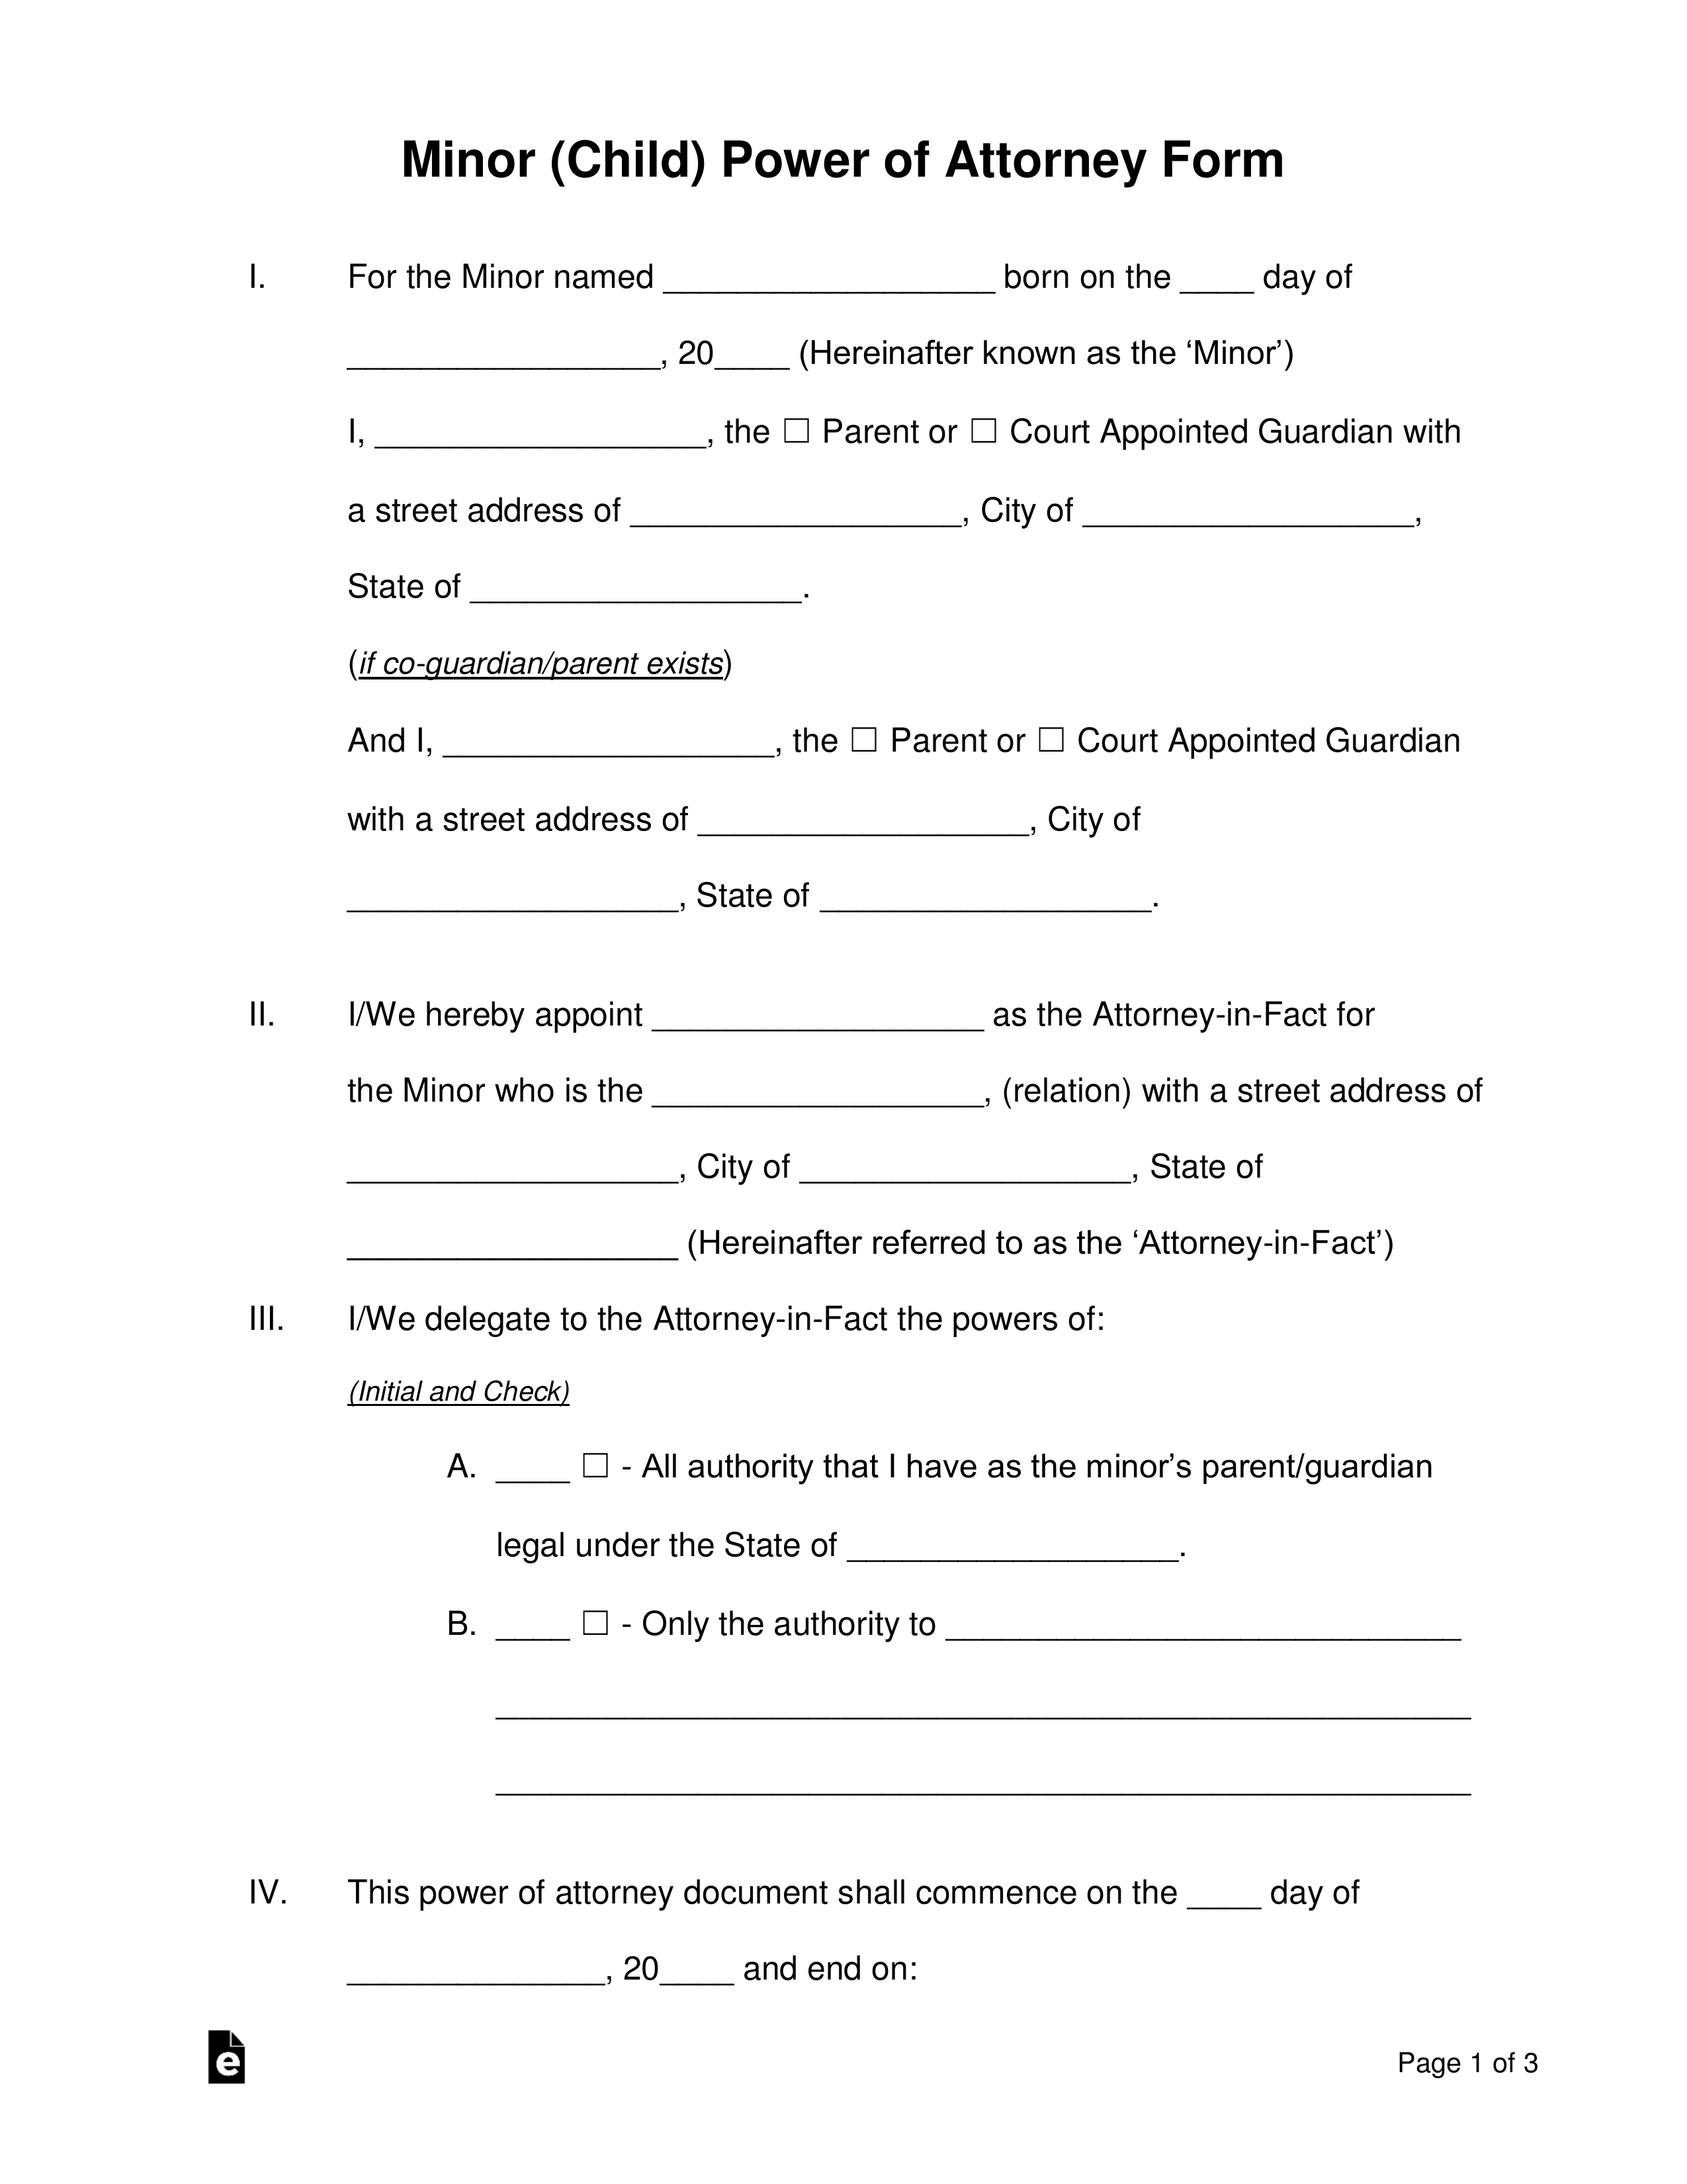 picture about Free Printable Power of Attorney Form Kentucky named Totally free Tiny (Youngster) Electric power of Lawyer Types - PDF Term